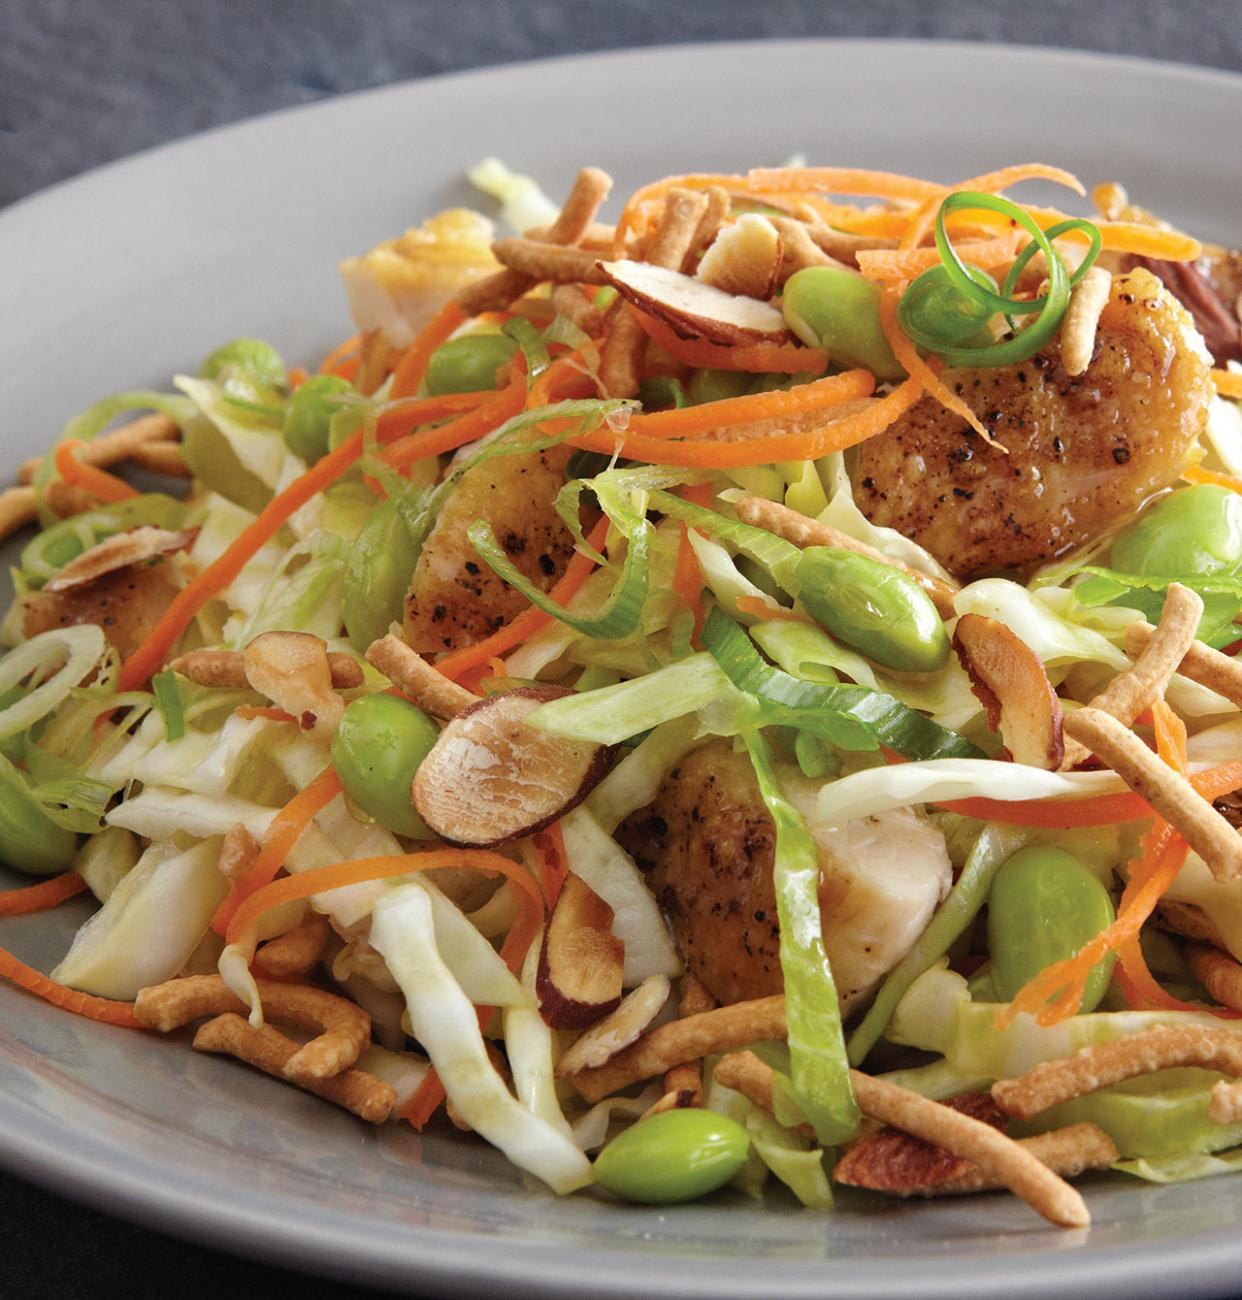 Recipe for Crunchy Asian Salad With Chicken